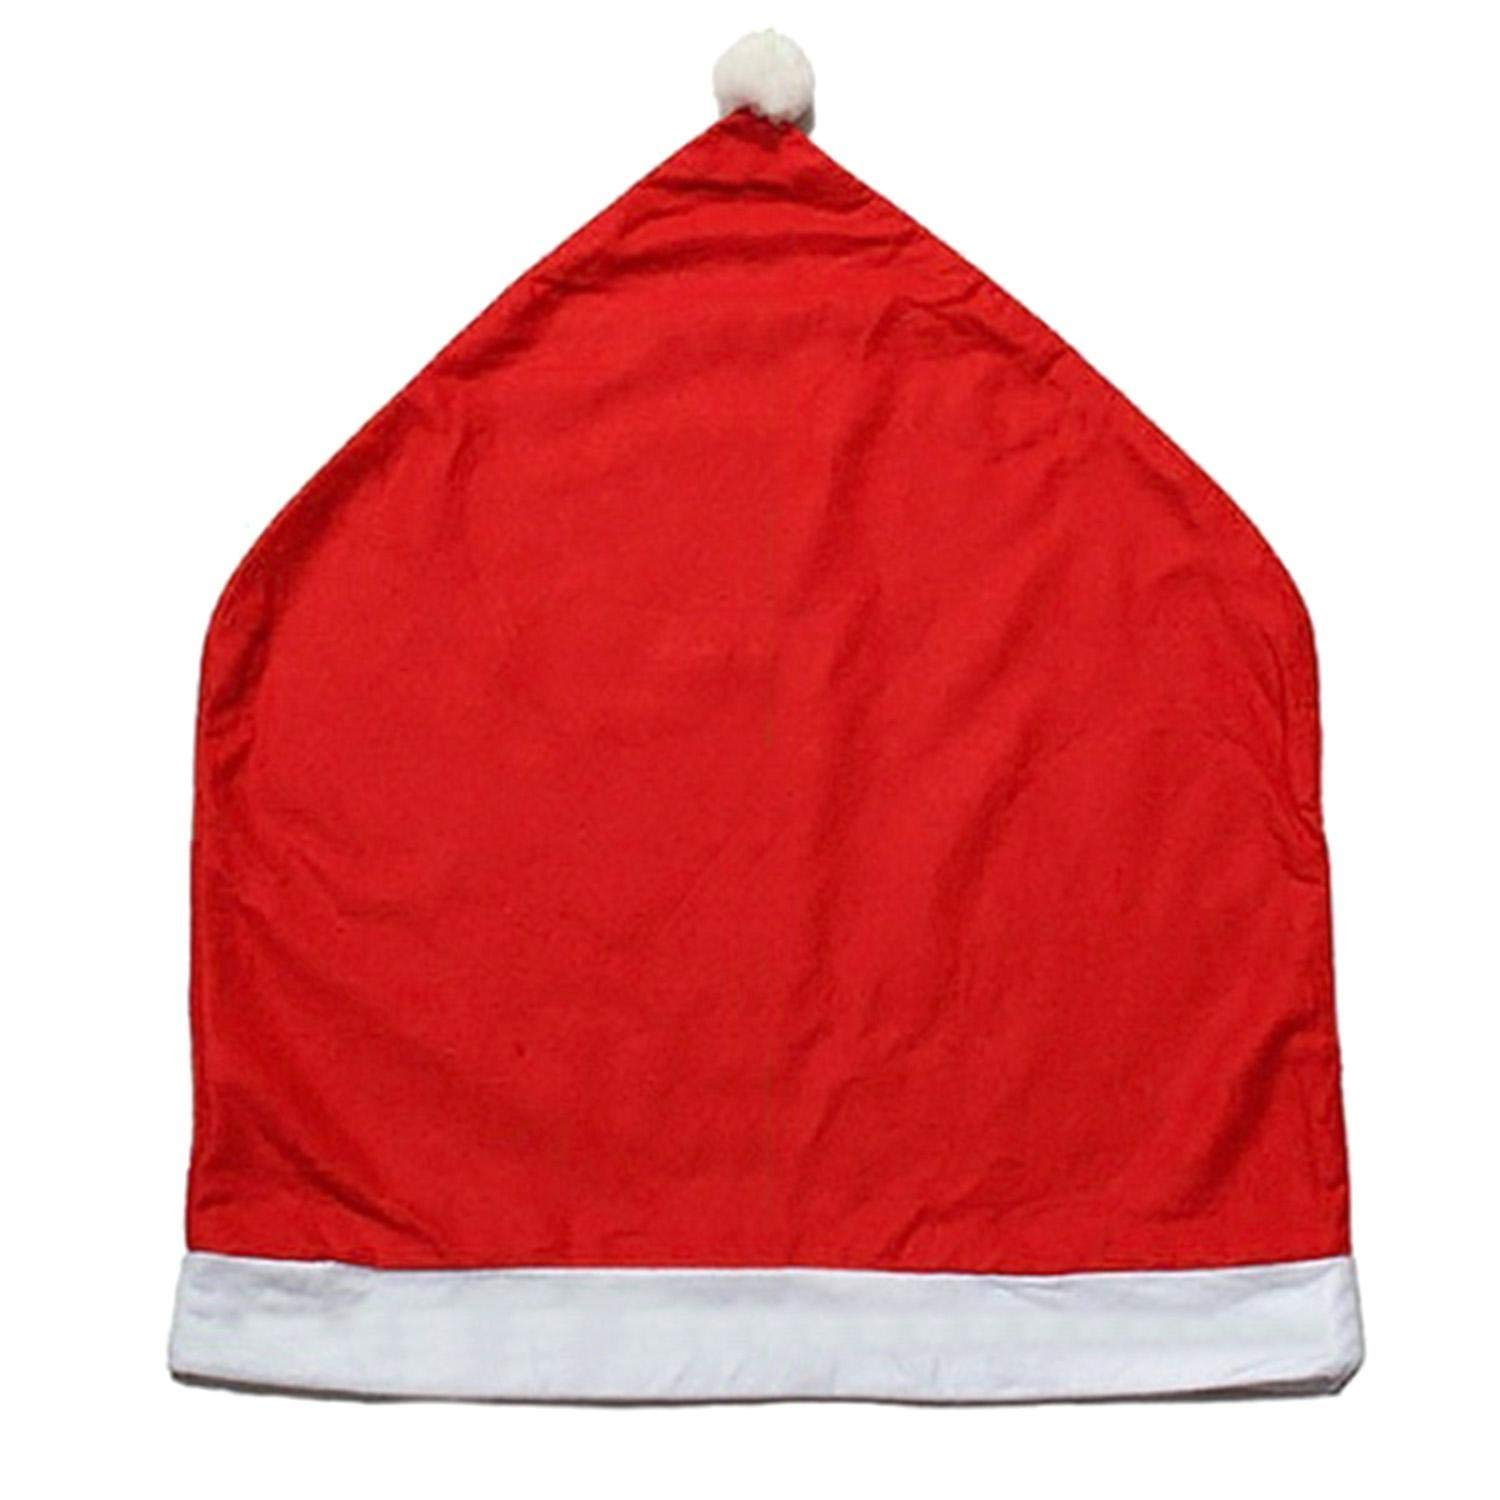 Oliote Santa Clause Red Hat Chair Covers, Decor Christmas Dinner Table Party Décor